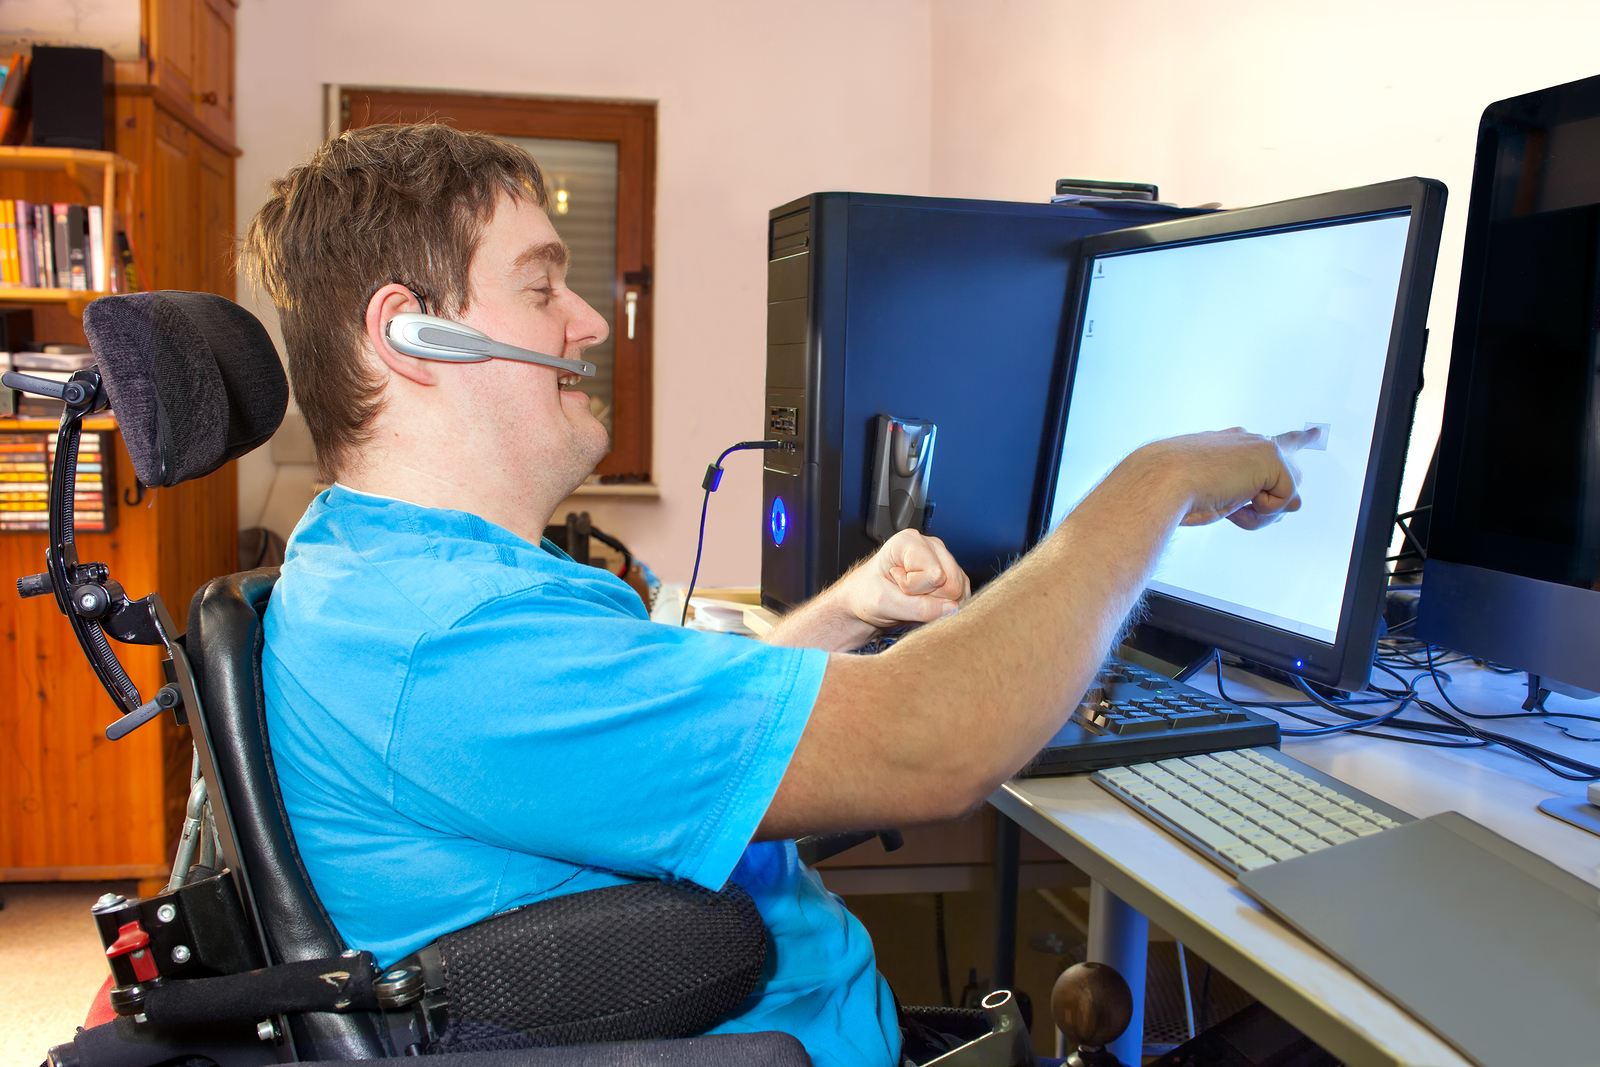 Man uses communication devices while working on the commputer.